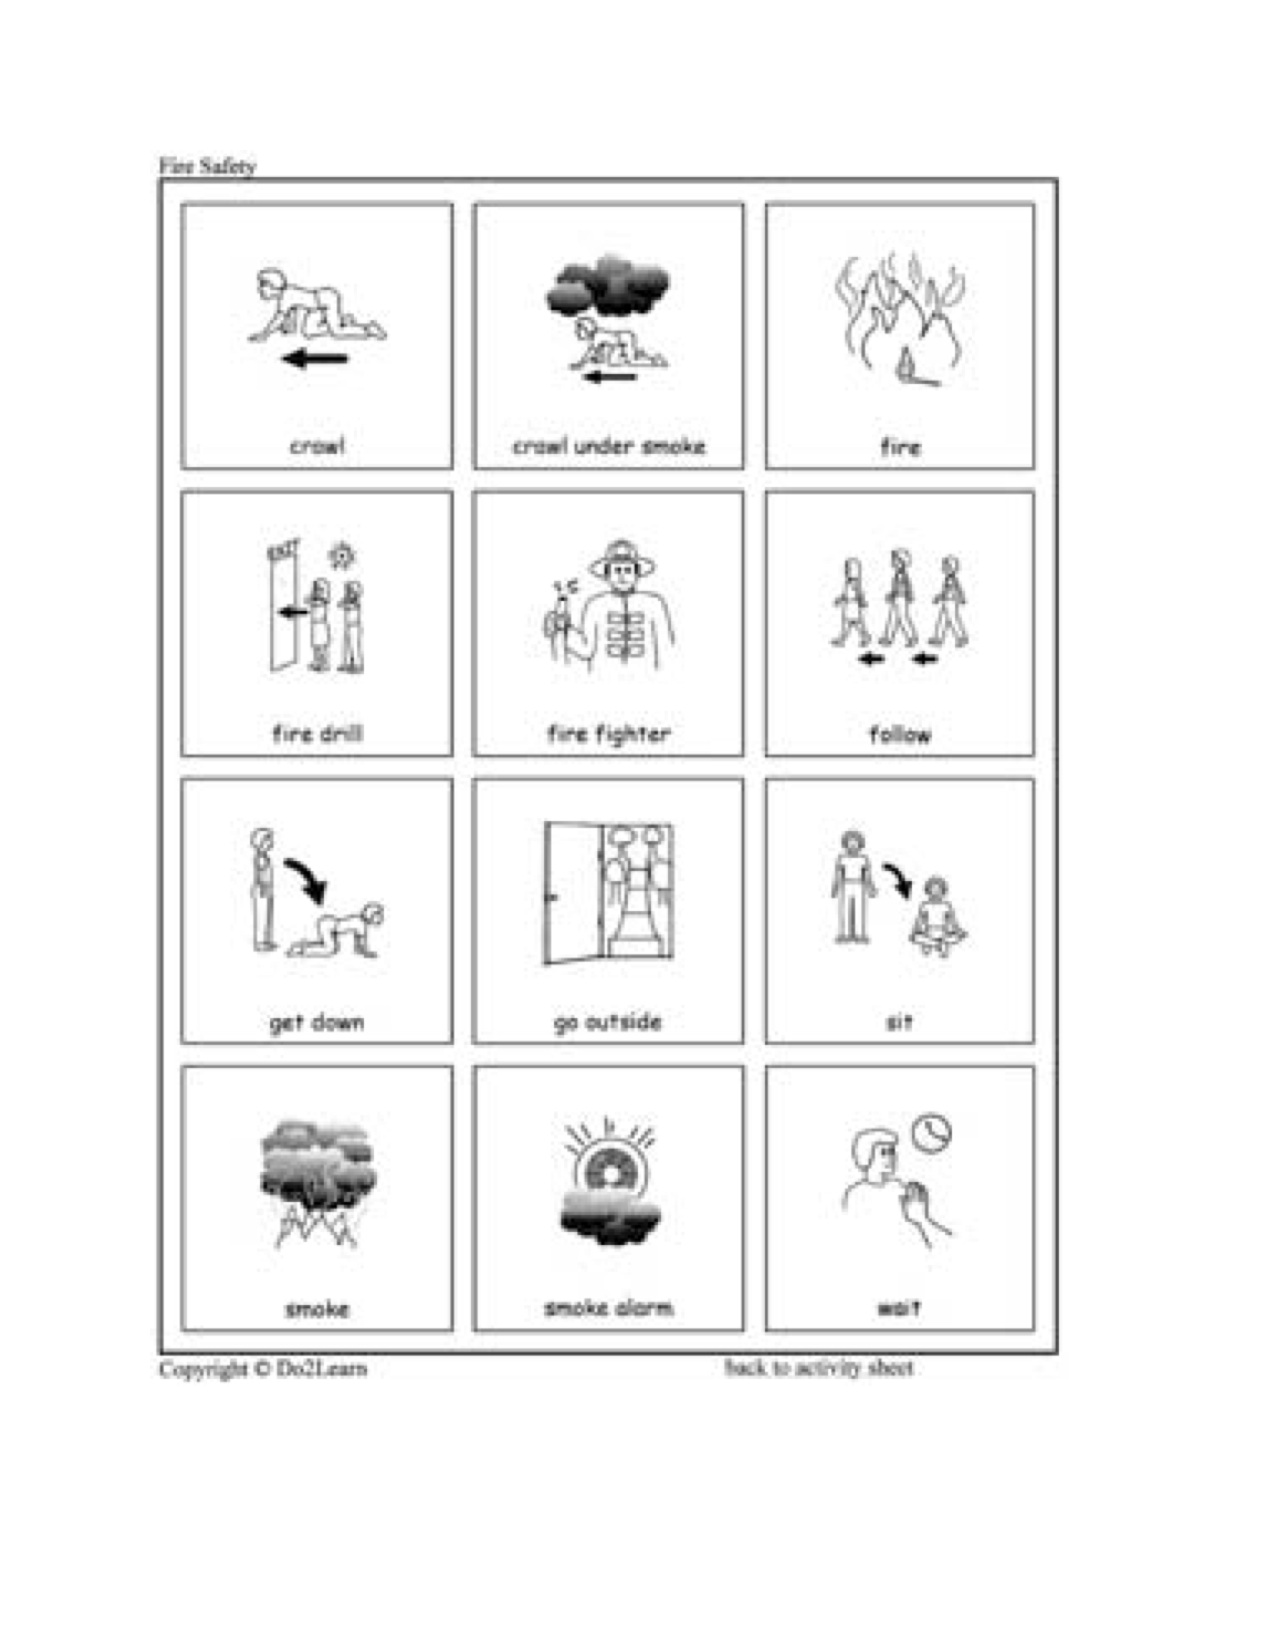 Fire Safety Worksheets For Preschoolers